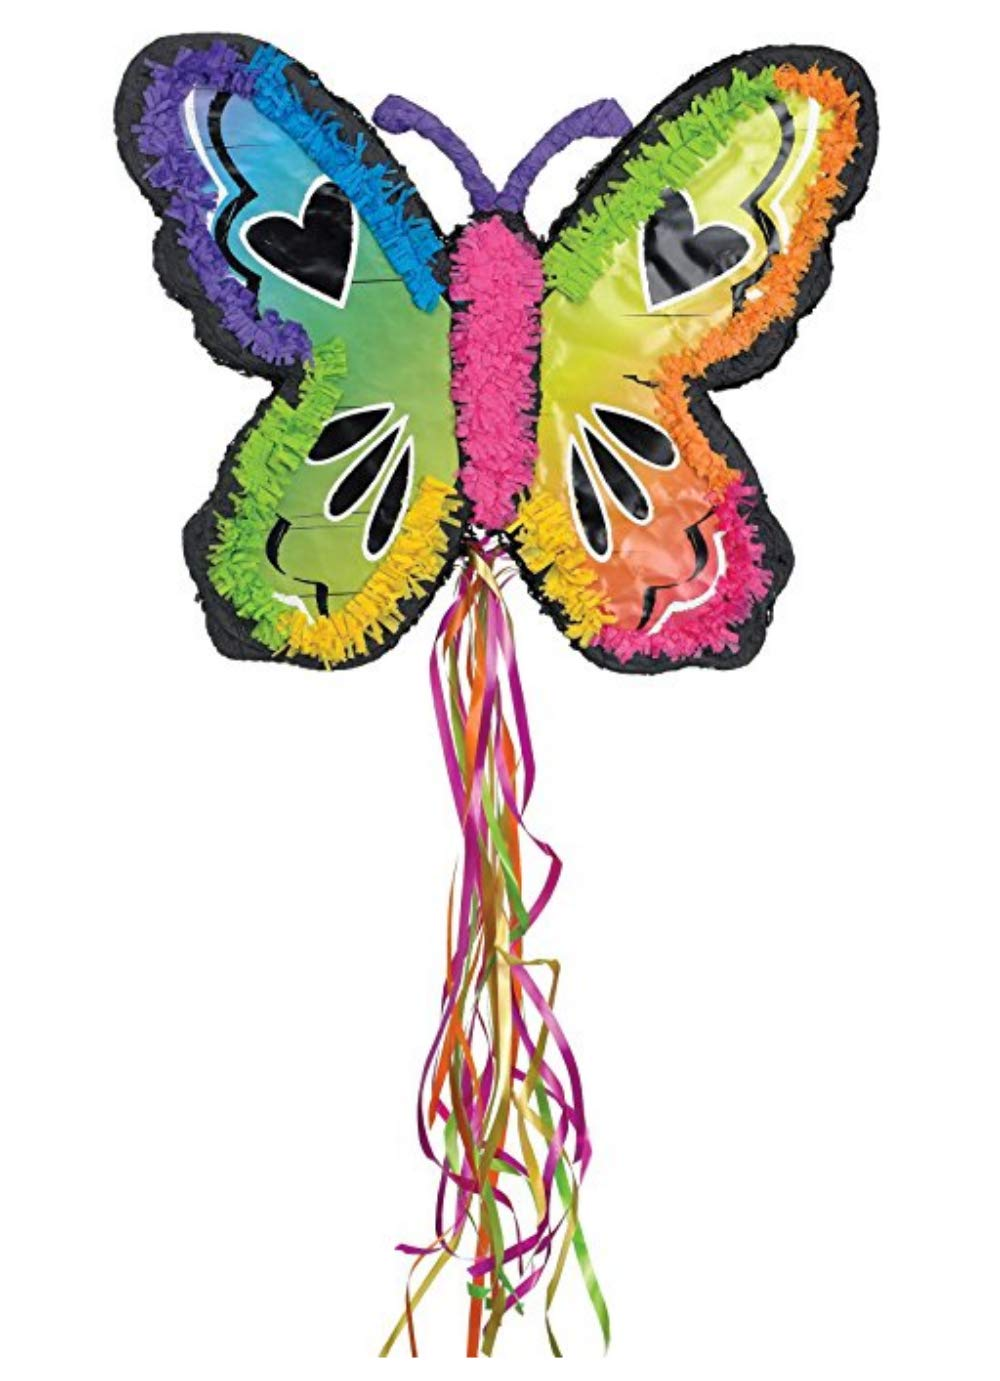 Filled Ya Otta Pinata Neon Butterfly Mexican Style Party Supplies Bundle with 2 pounds of Pi/ñata Candy Filler and an eBook on Activities for Kids Birthday Parties